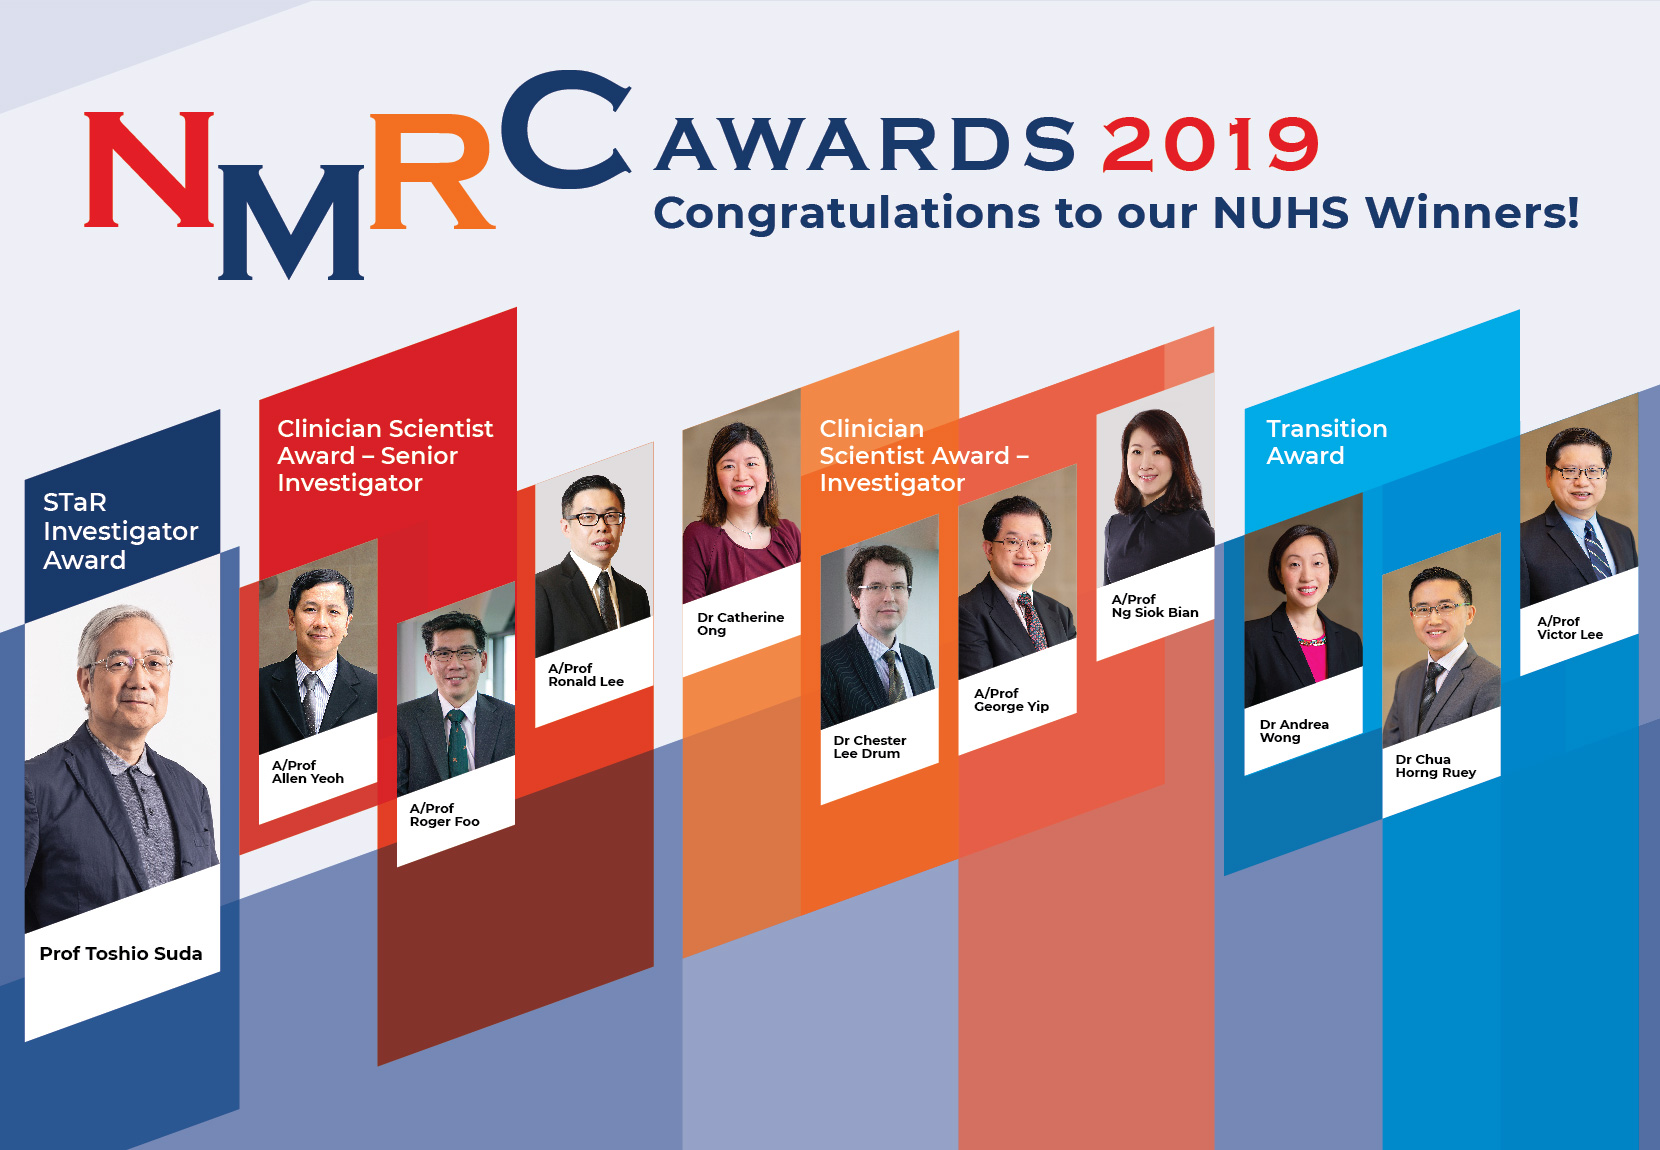 Congratulations to our NMRC Awards' Winners 2019